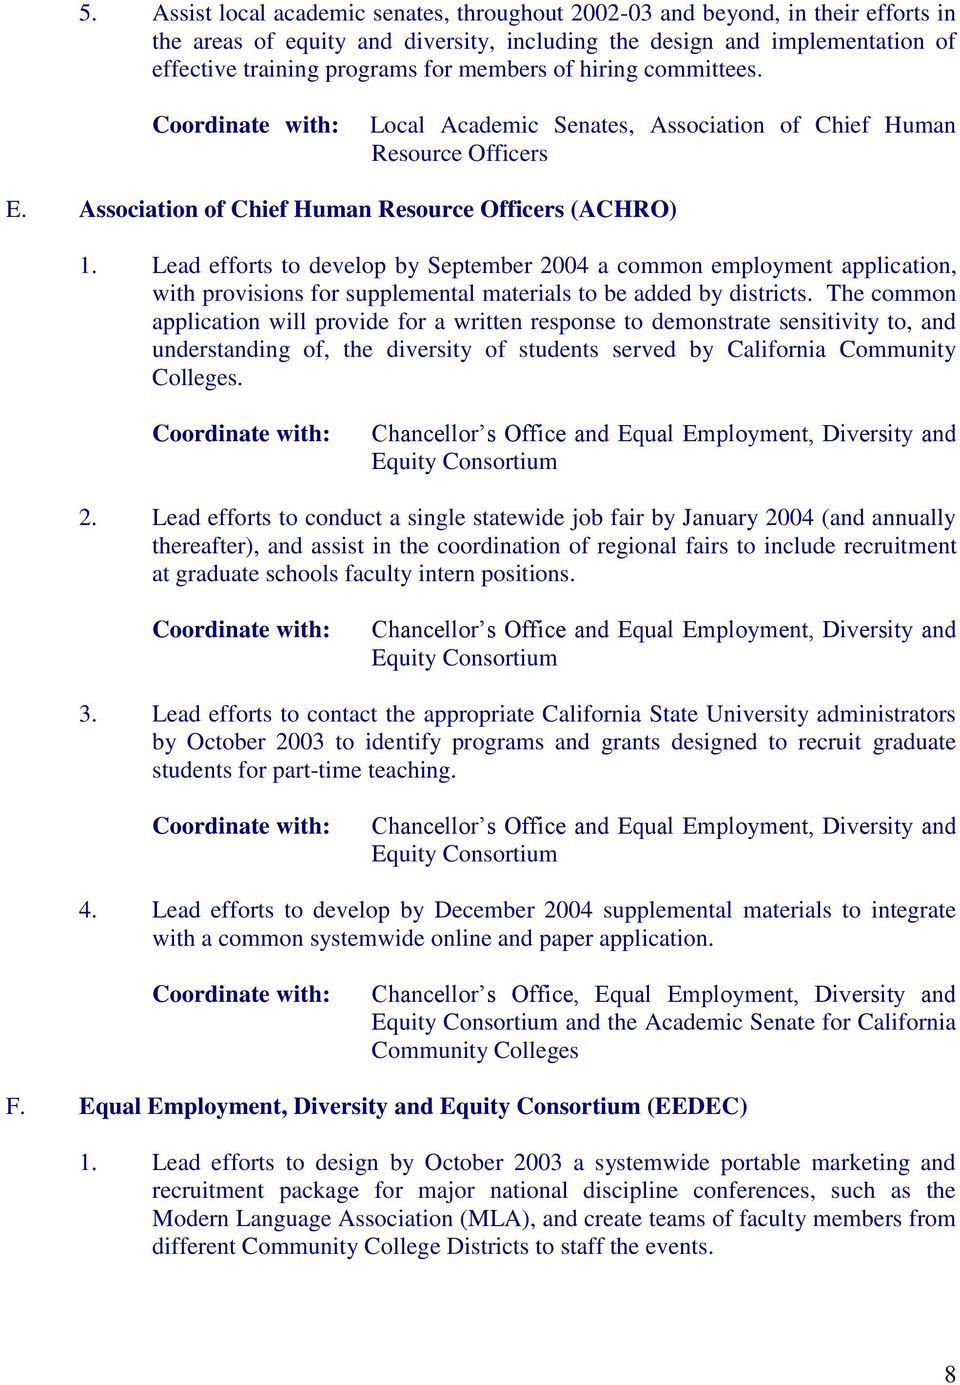 Lead efforts to develop by September 2004 a common employment application, with provisions for supplemental materials to be added by districts.